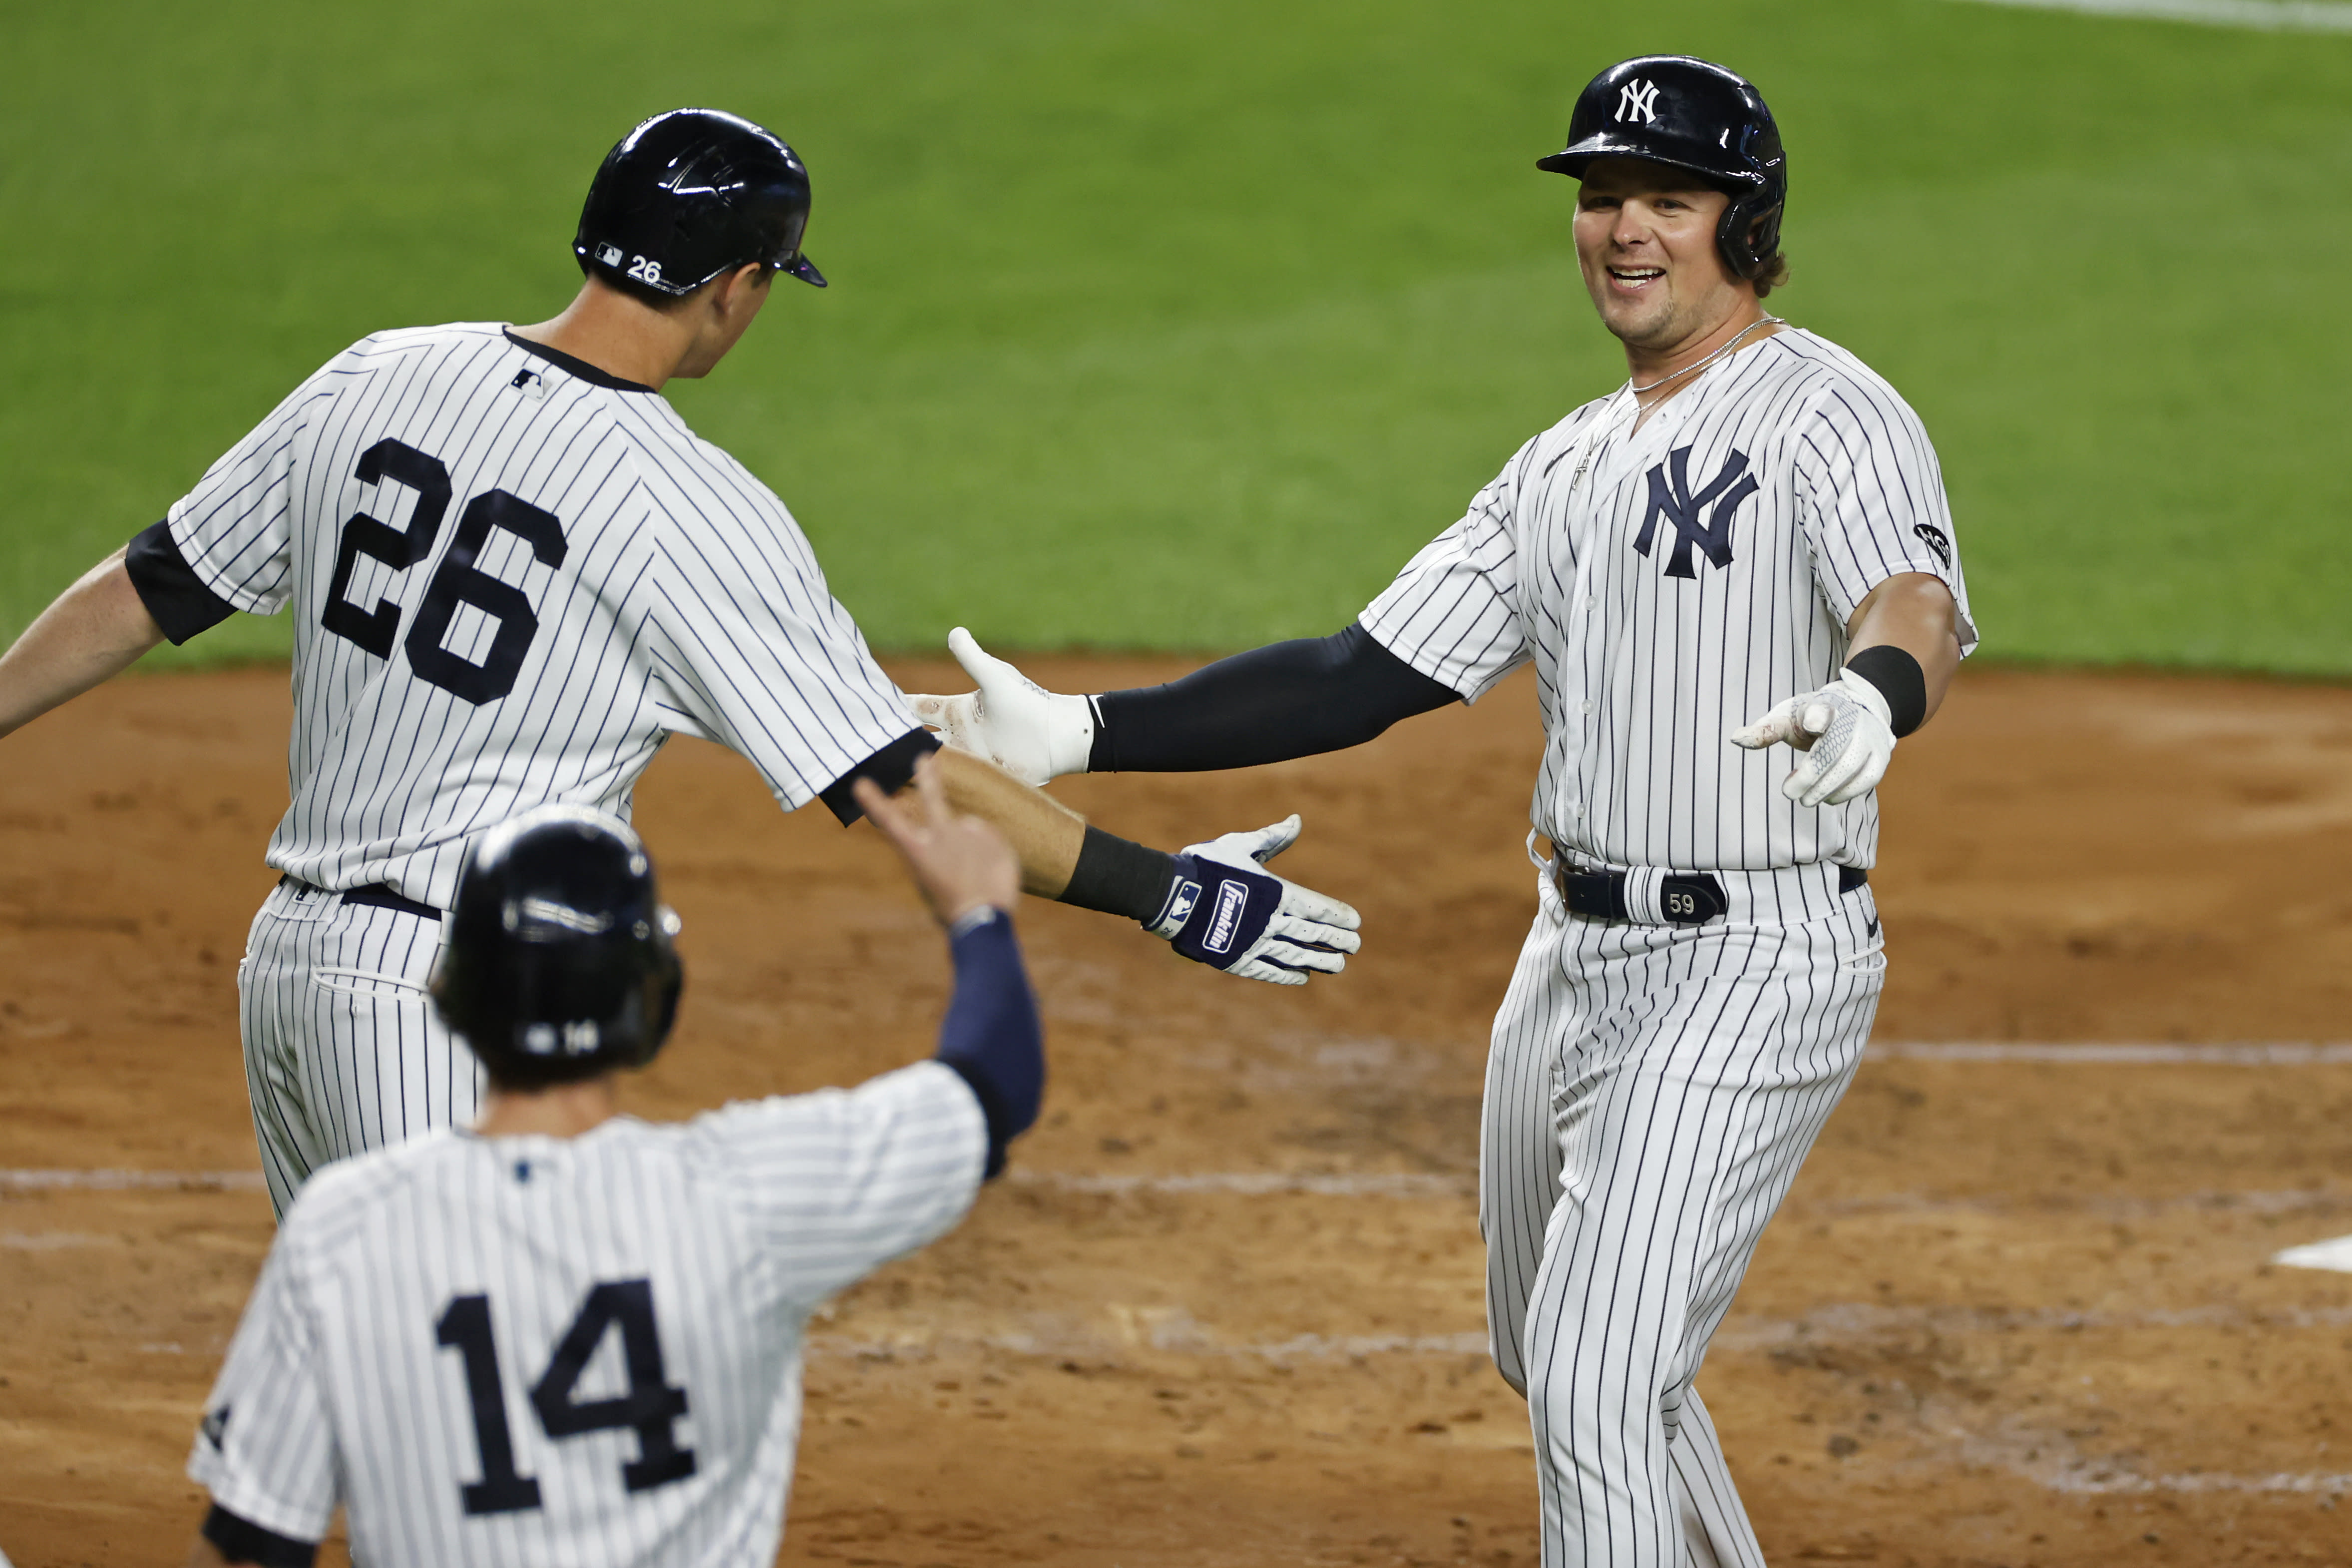 New York Yankees' Luke Voit celebrates hitting a three-run home run with DJ LeMahieu (26) and Tyler Wade (14) during the second inning of a baseball game against the Toronto Blue Jays on Tuesday, Sept. 15, 2020, in New York. (AP Photo/Adam Hunger)